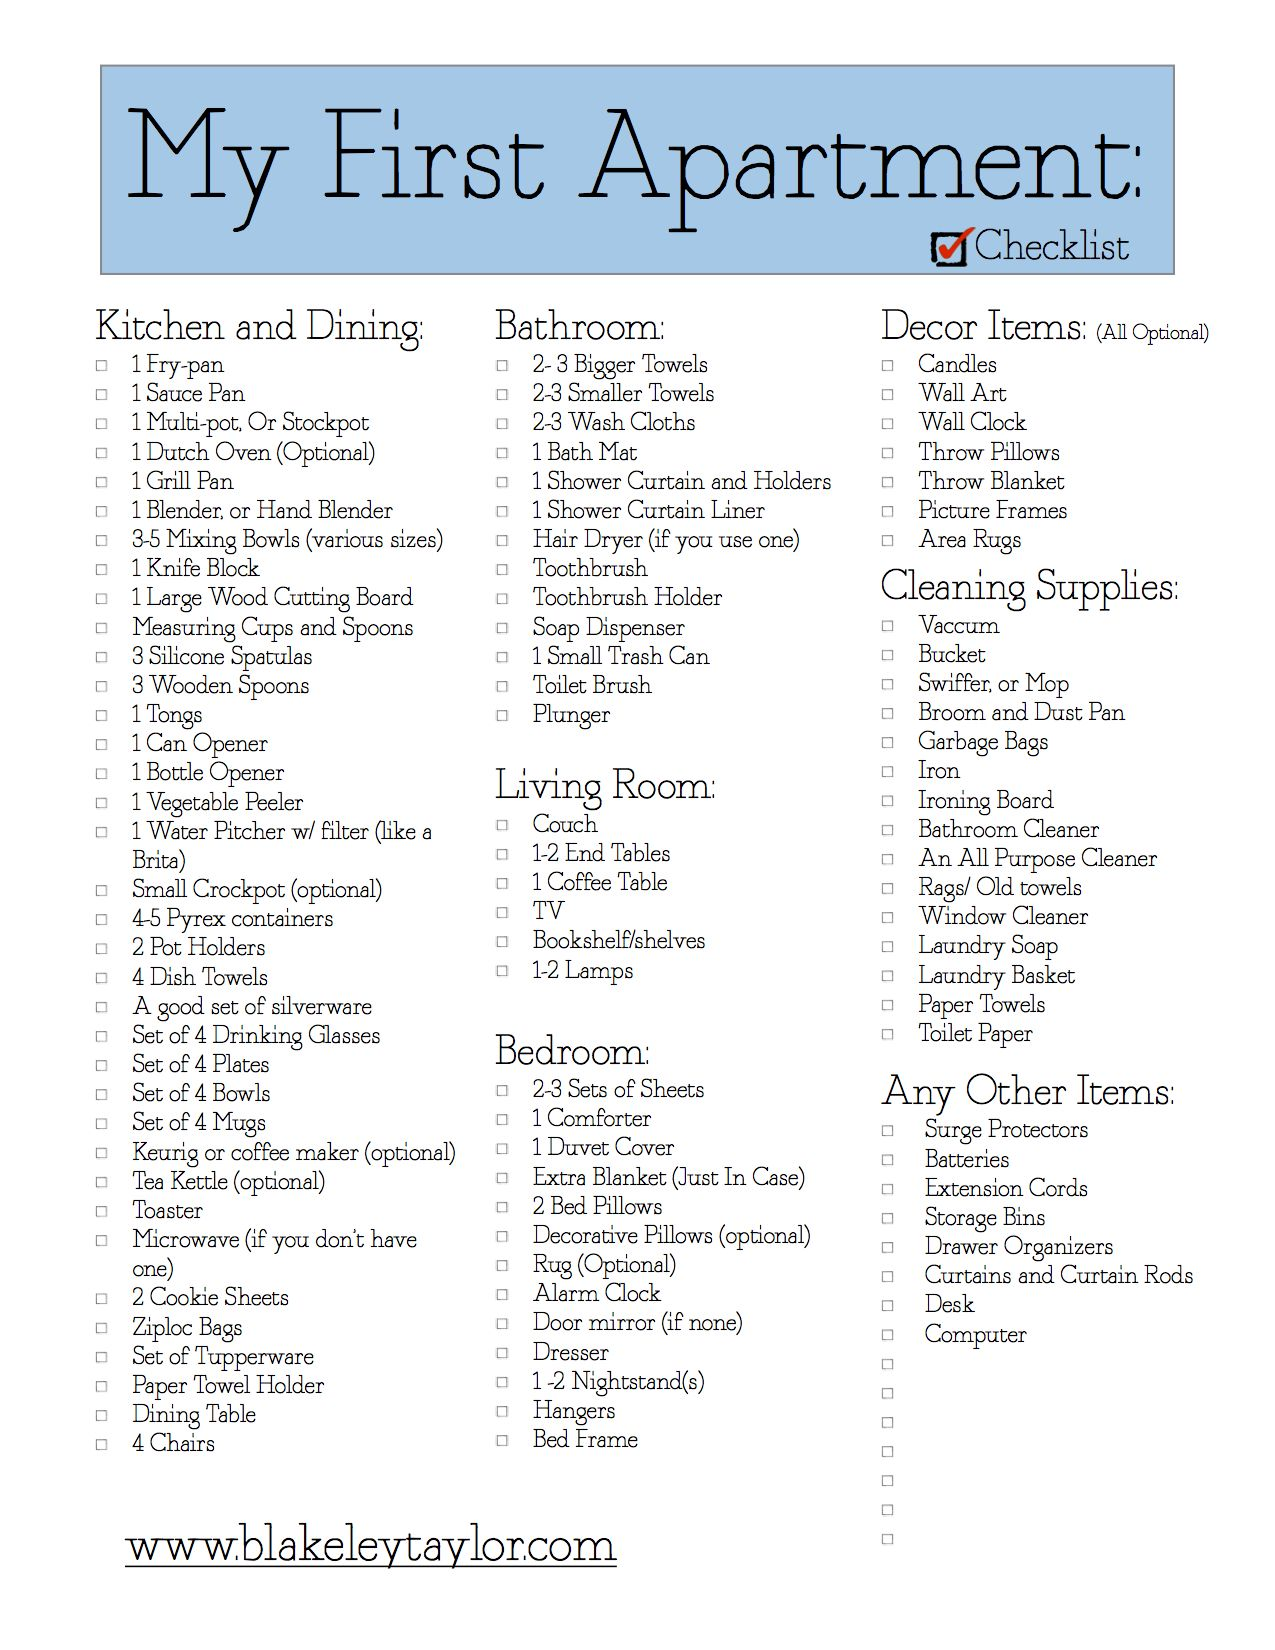 Printables And Downloads Blakeley Taylor Apartment Checklist First Apartment My First Apartment